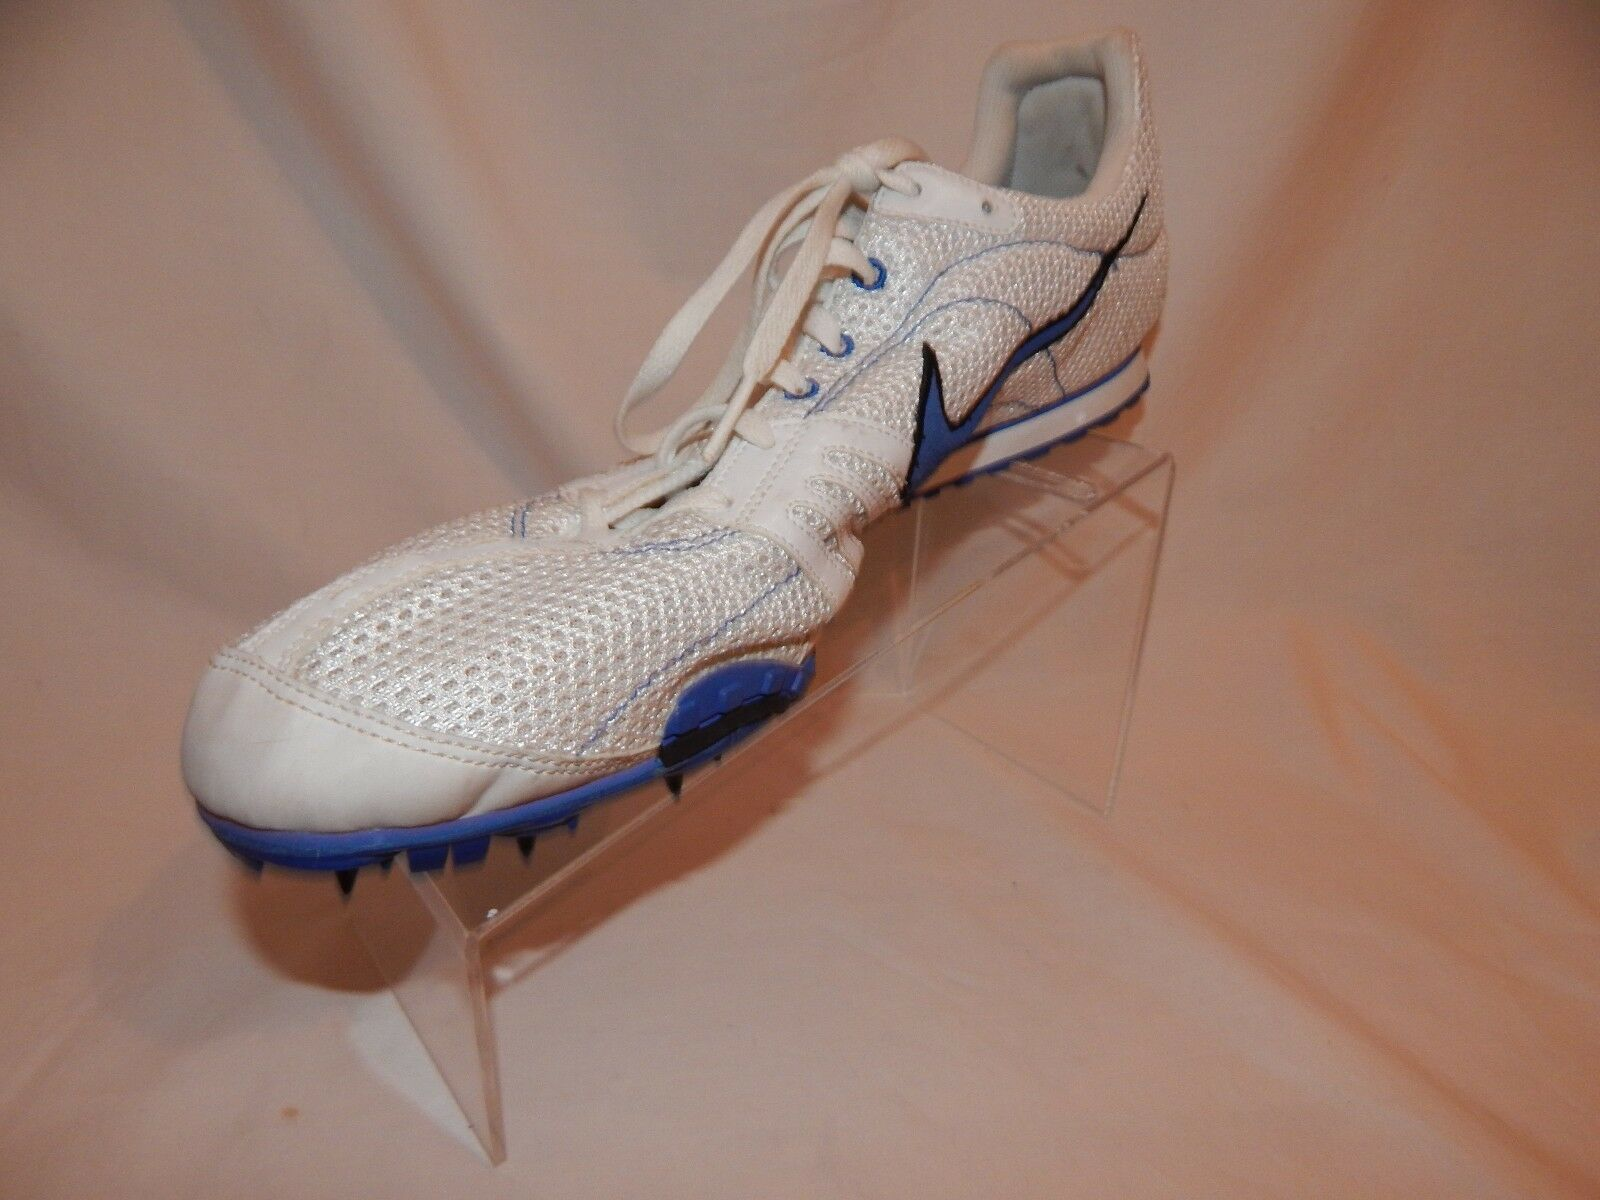 le r ival nike hommes d d hommes plus iii voie spike chaussures taille 13 314285 141 92e4ed